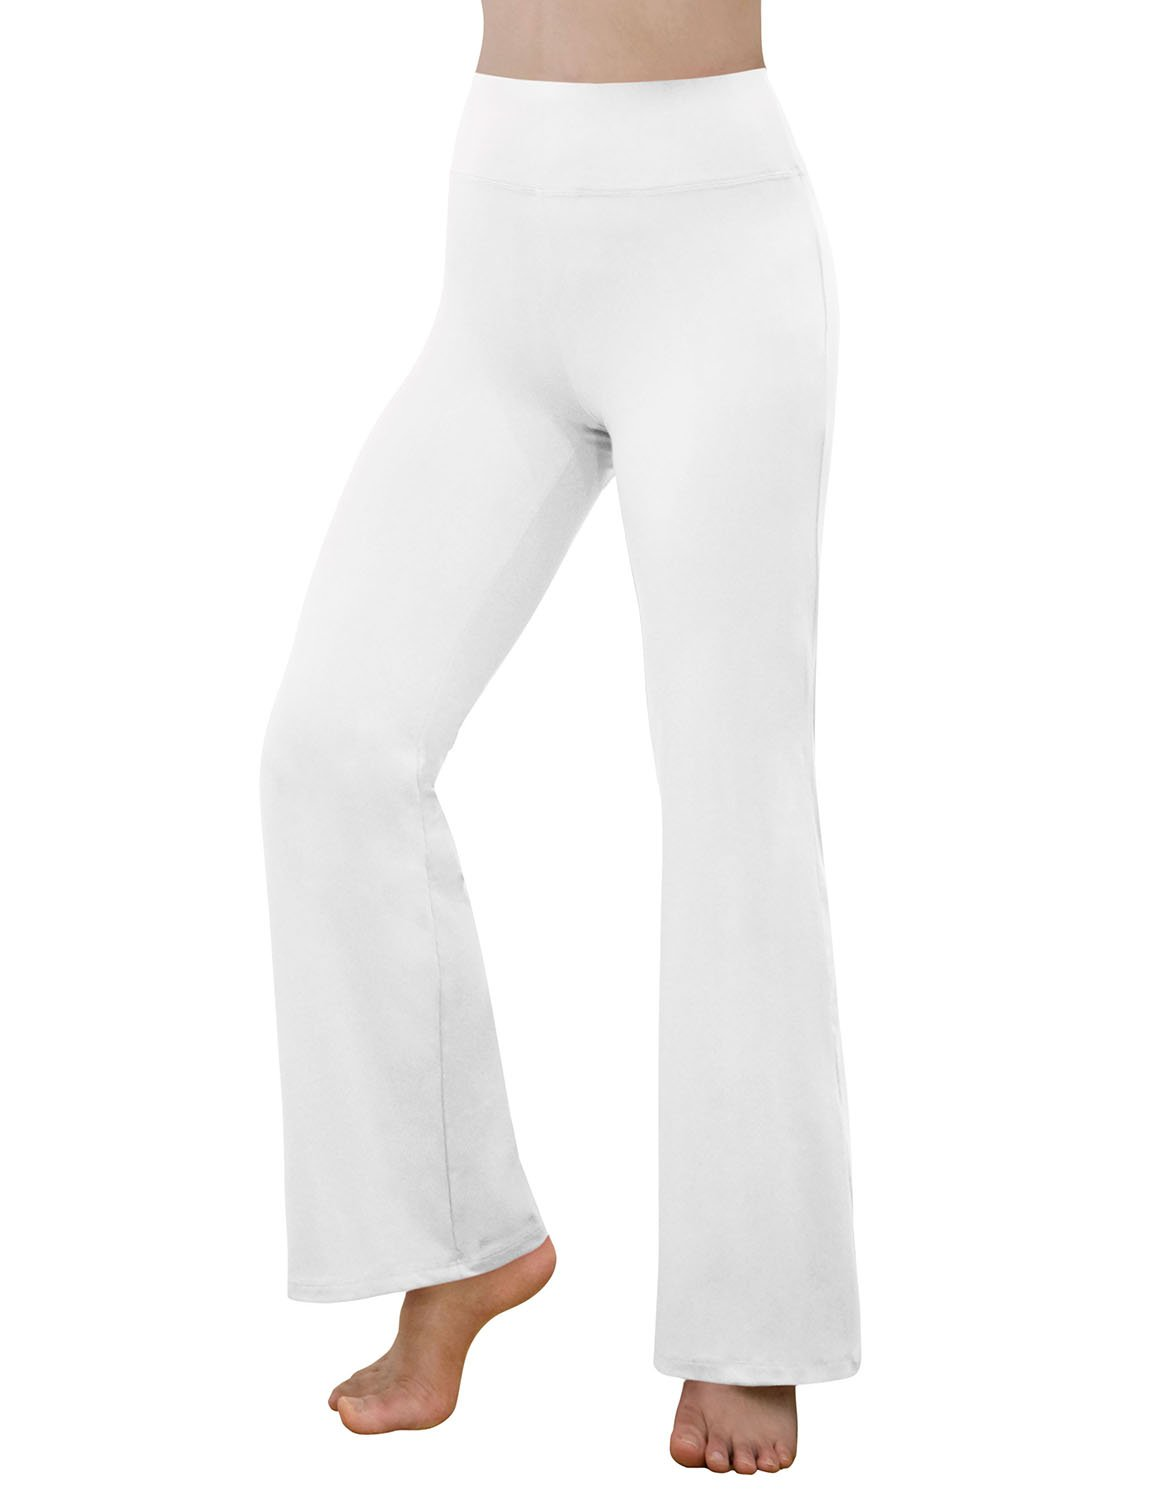 REETOYO Women's Power Flex Tummy Control Workout Yoga Boot Cut Flares Pants Hidden Pocket, White, X-Large